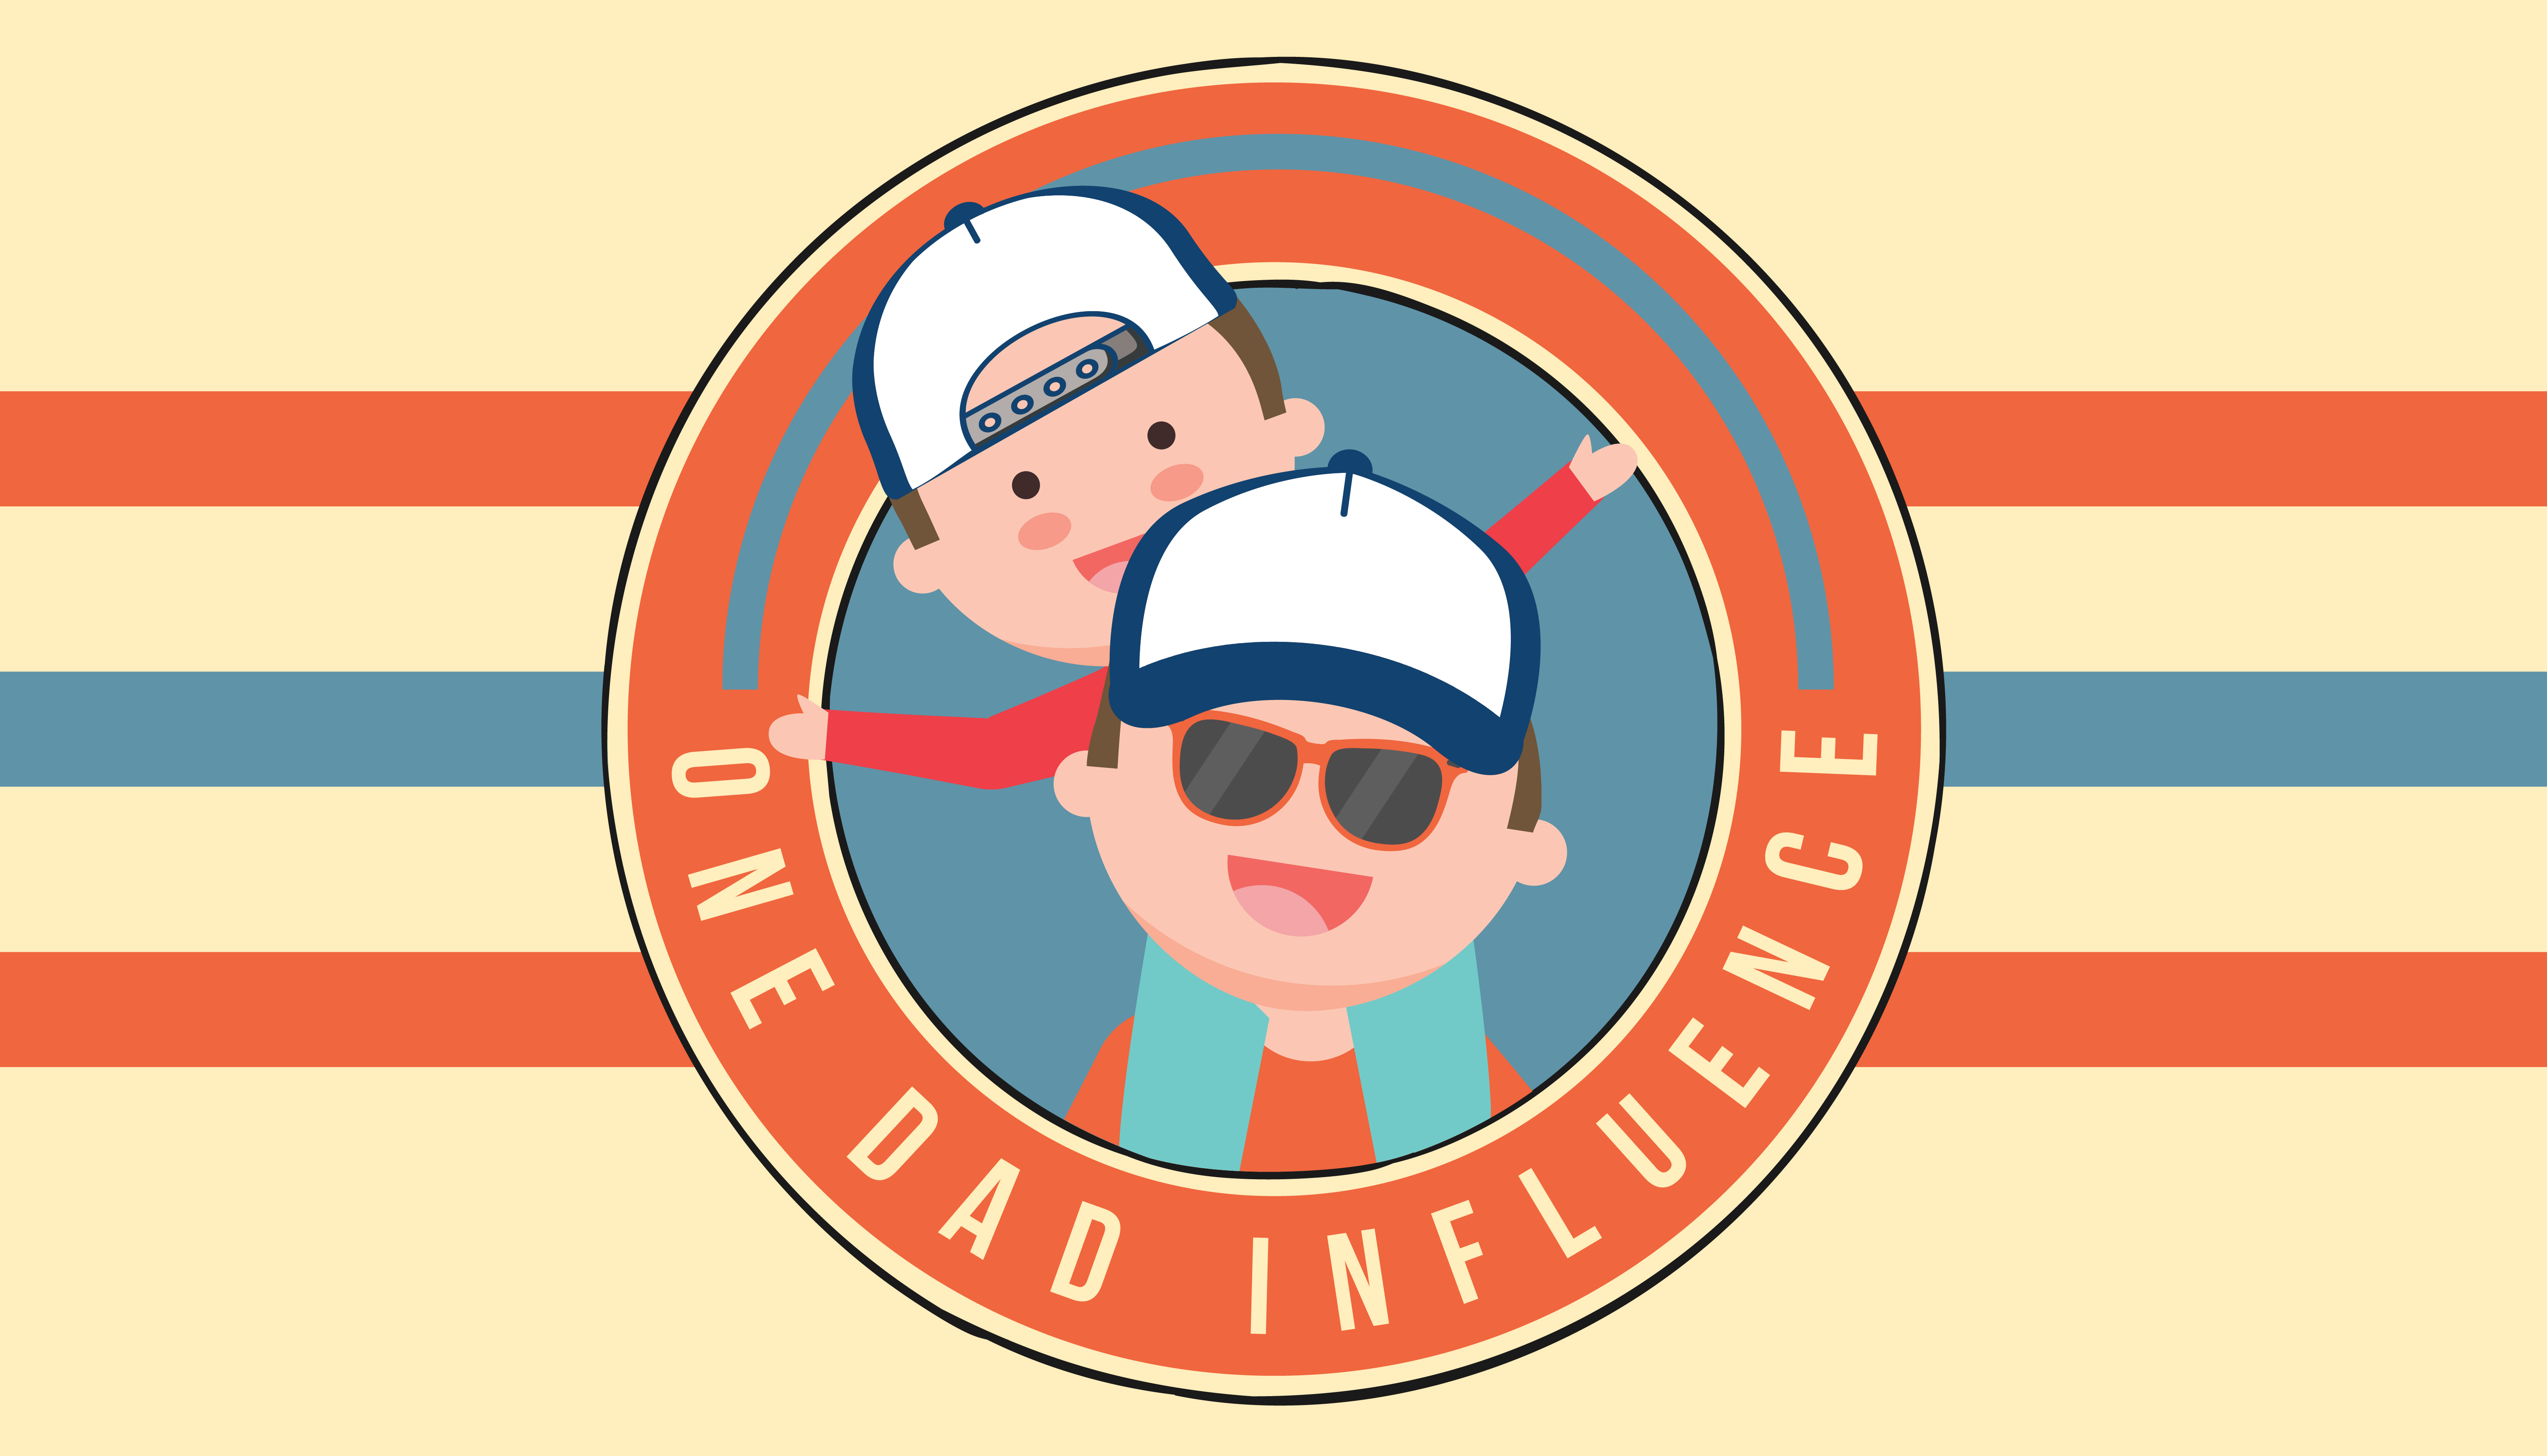 One Dad Influence